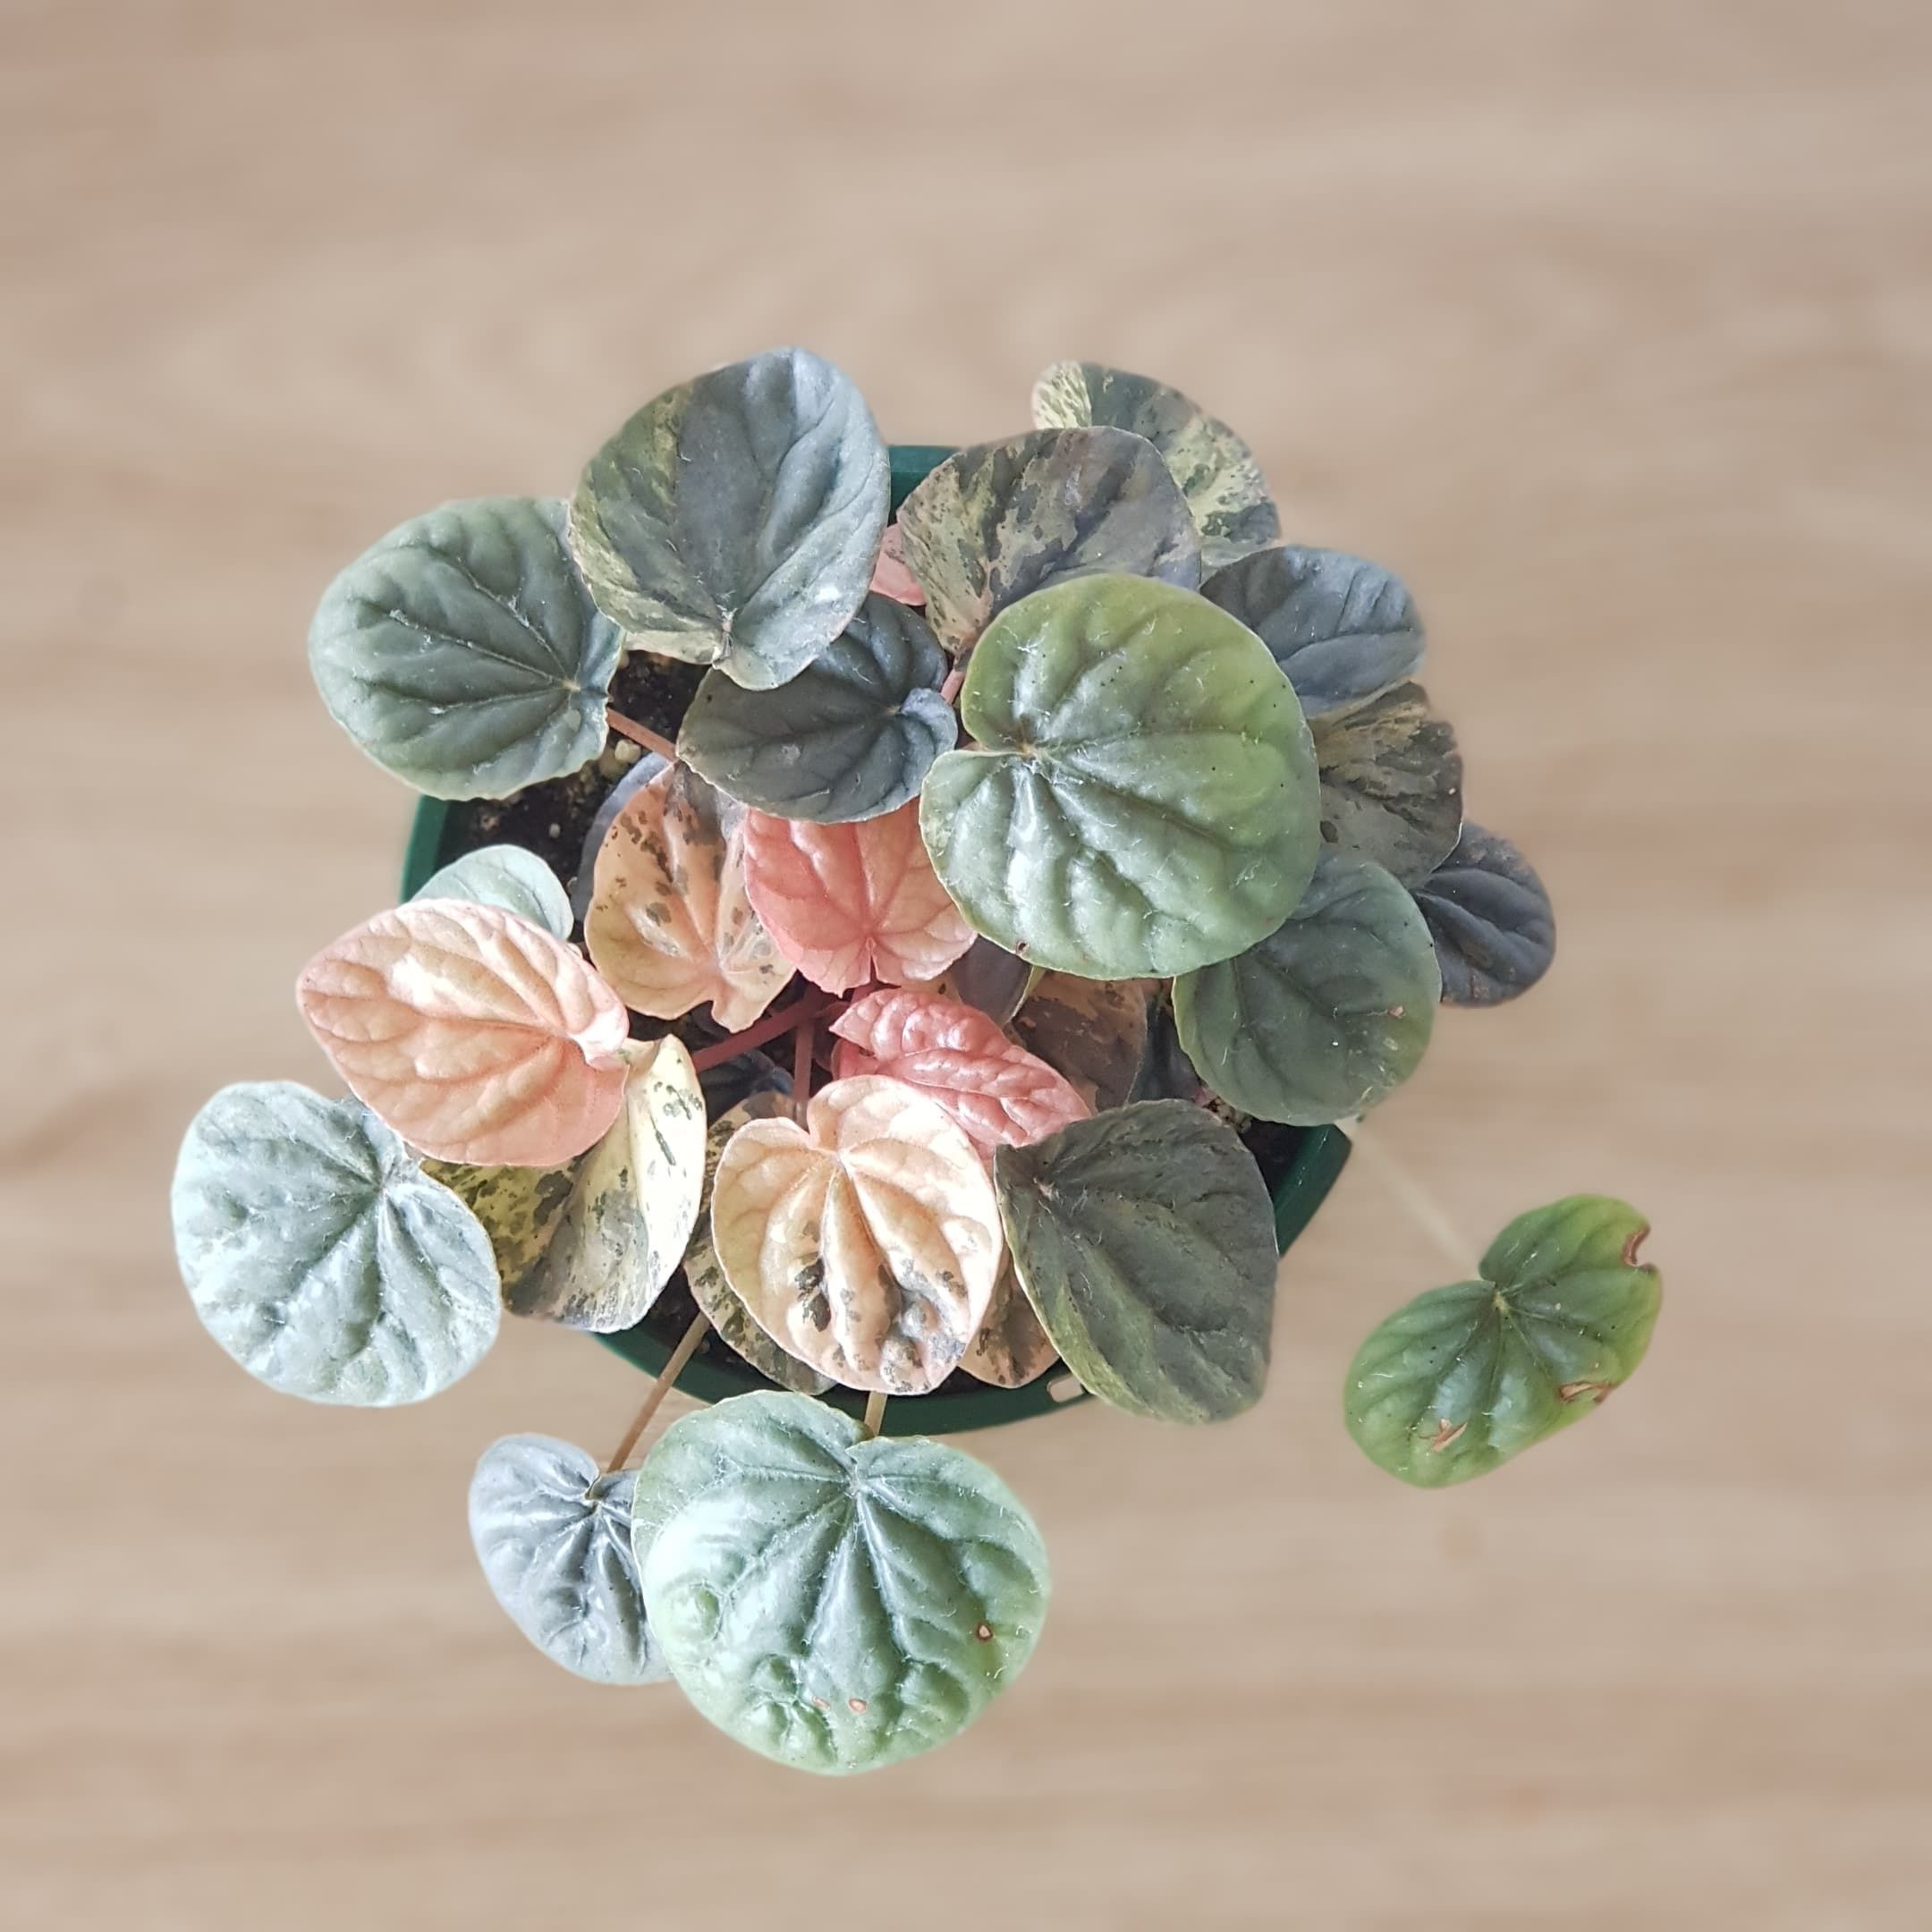 Pink lady peperomia #howtogrowplants